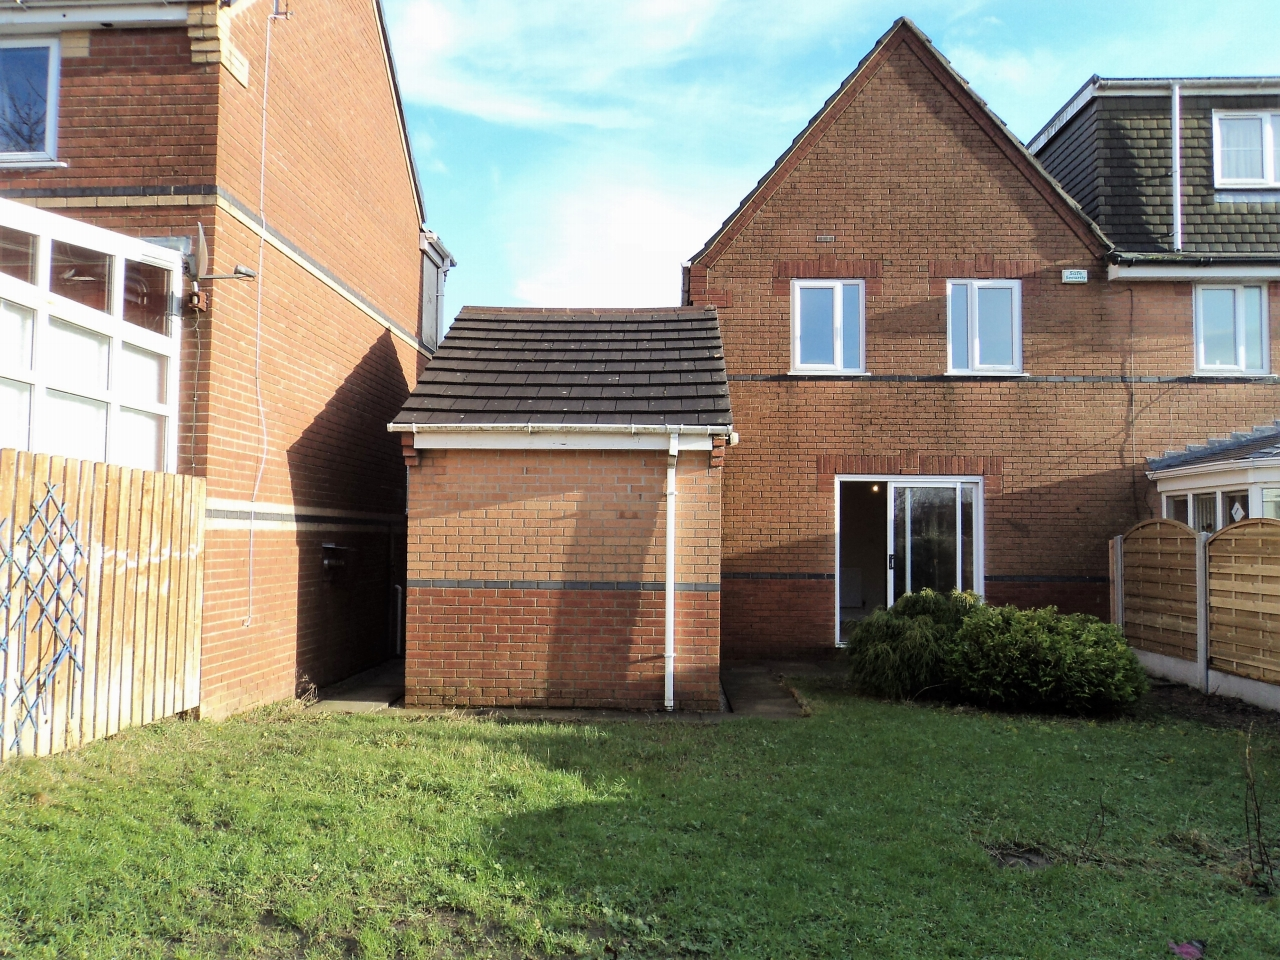 3 Bedroom House For Sale - Image 11